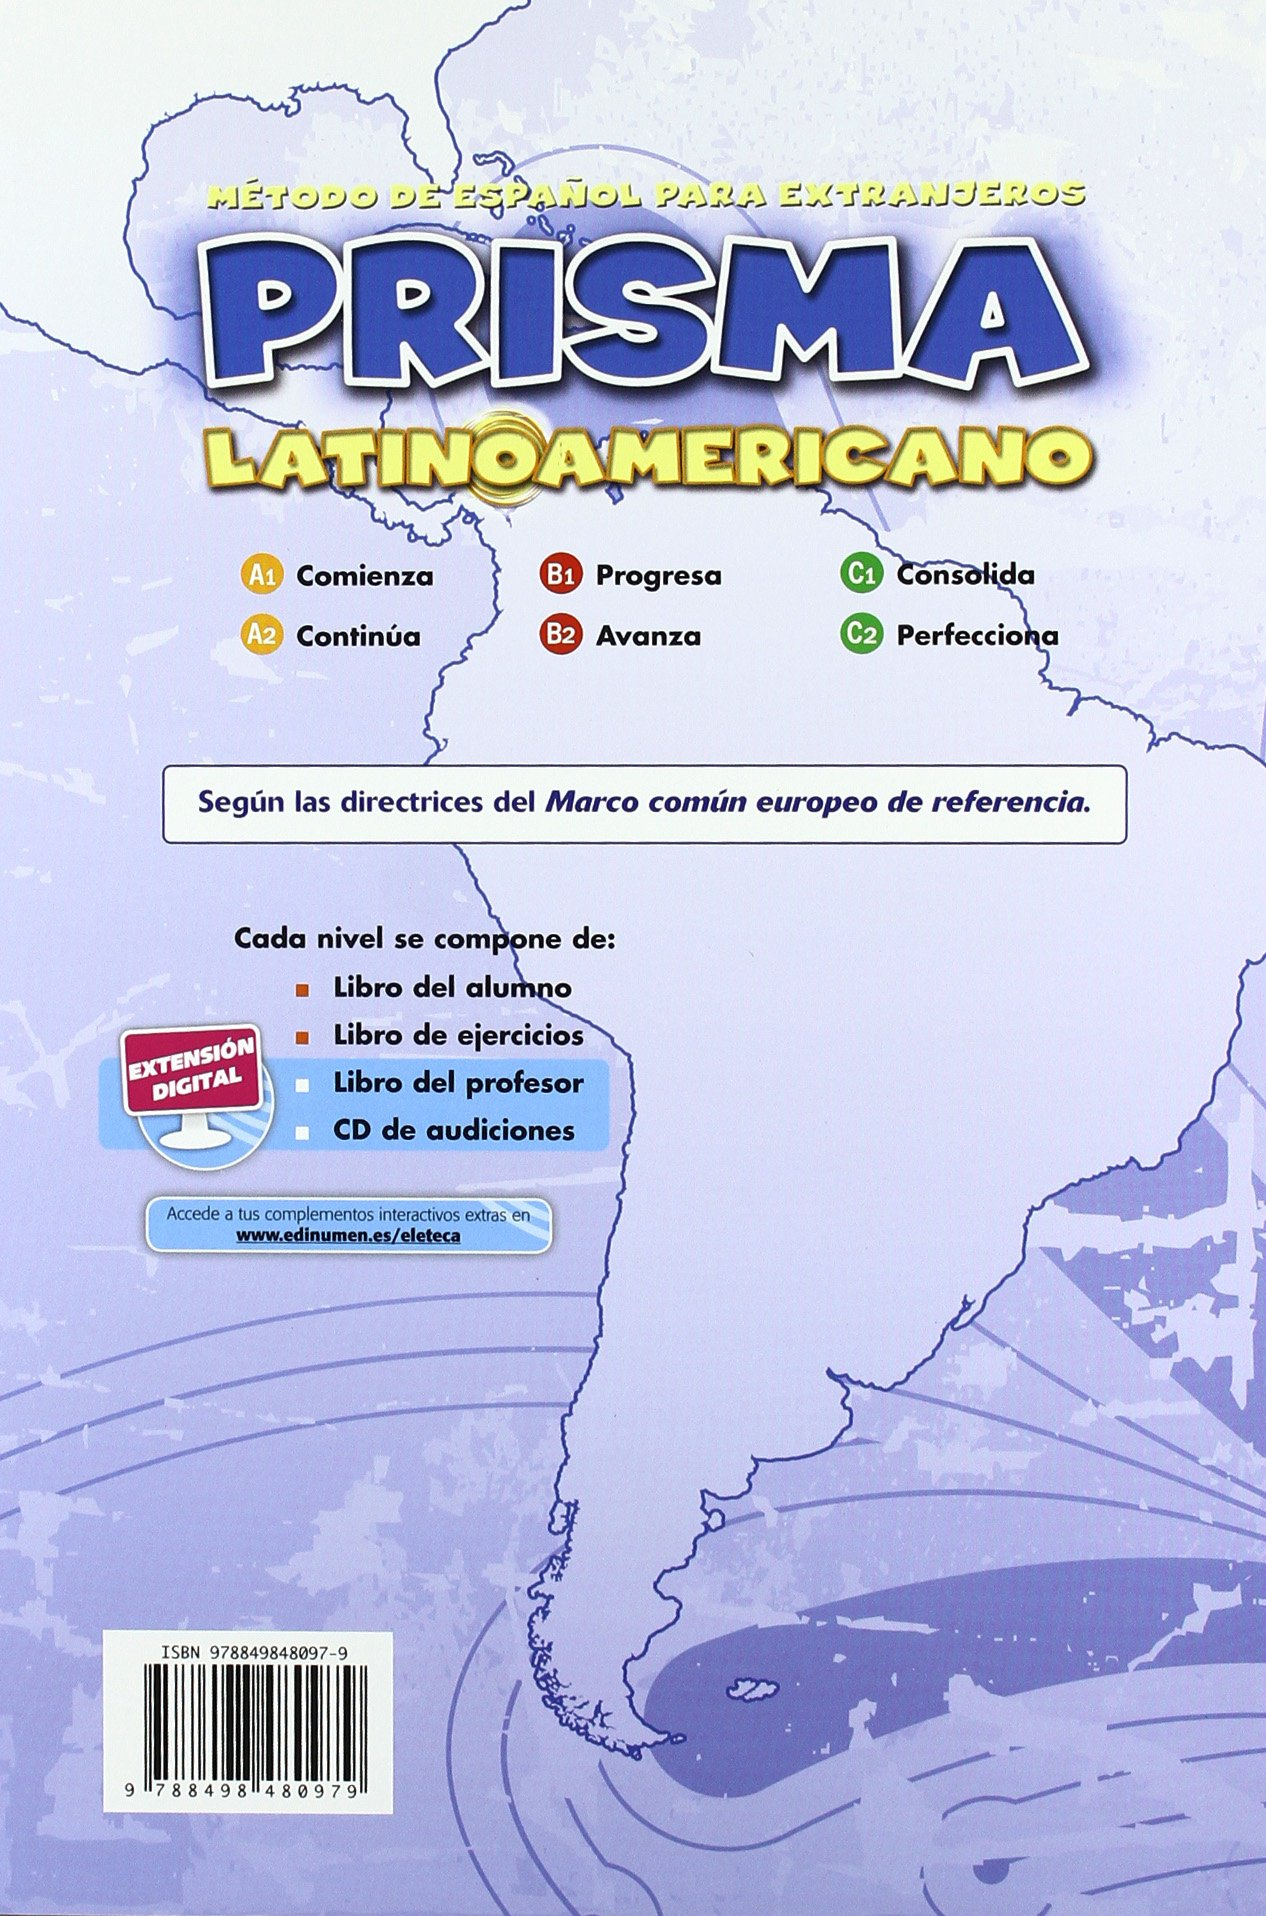 Buy prisma latinoamericano a1 student book metodo de espanol buy prisma latinoamericano a1 student book metodo de espanol para extranjeros spanish language for foreigners book online at low prices in india fandeluxe Gallery